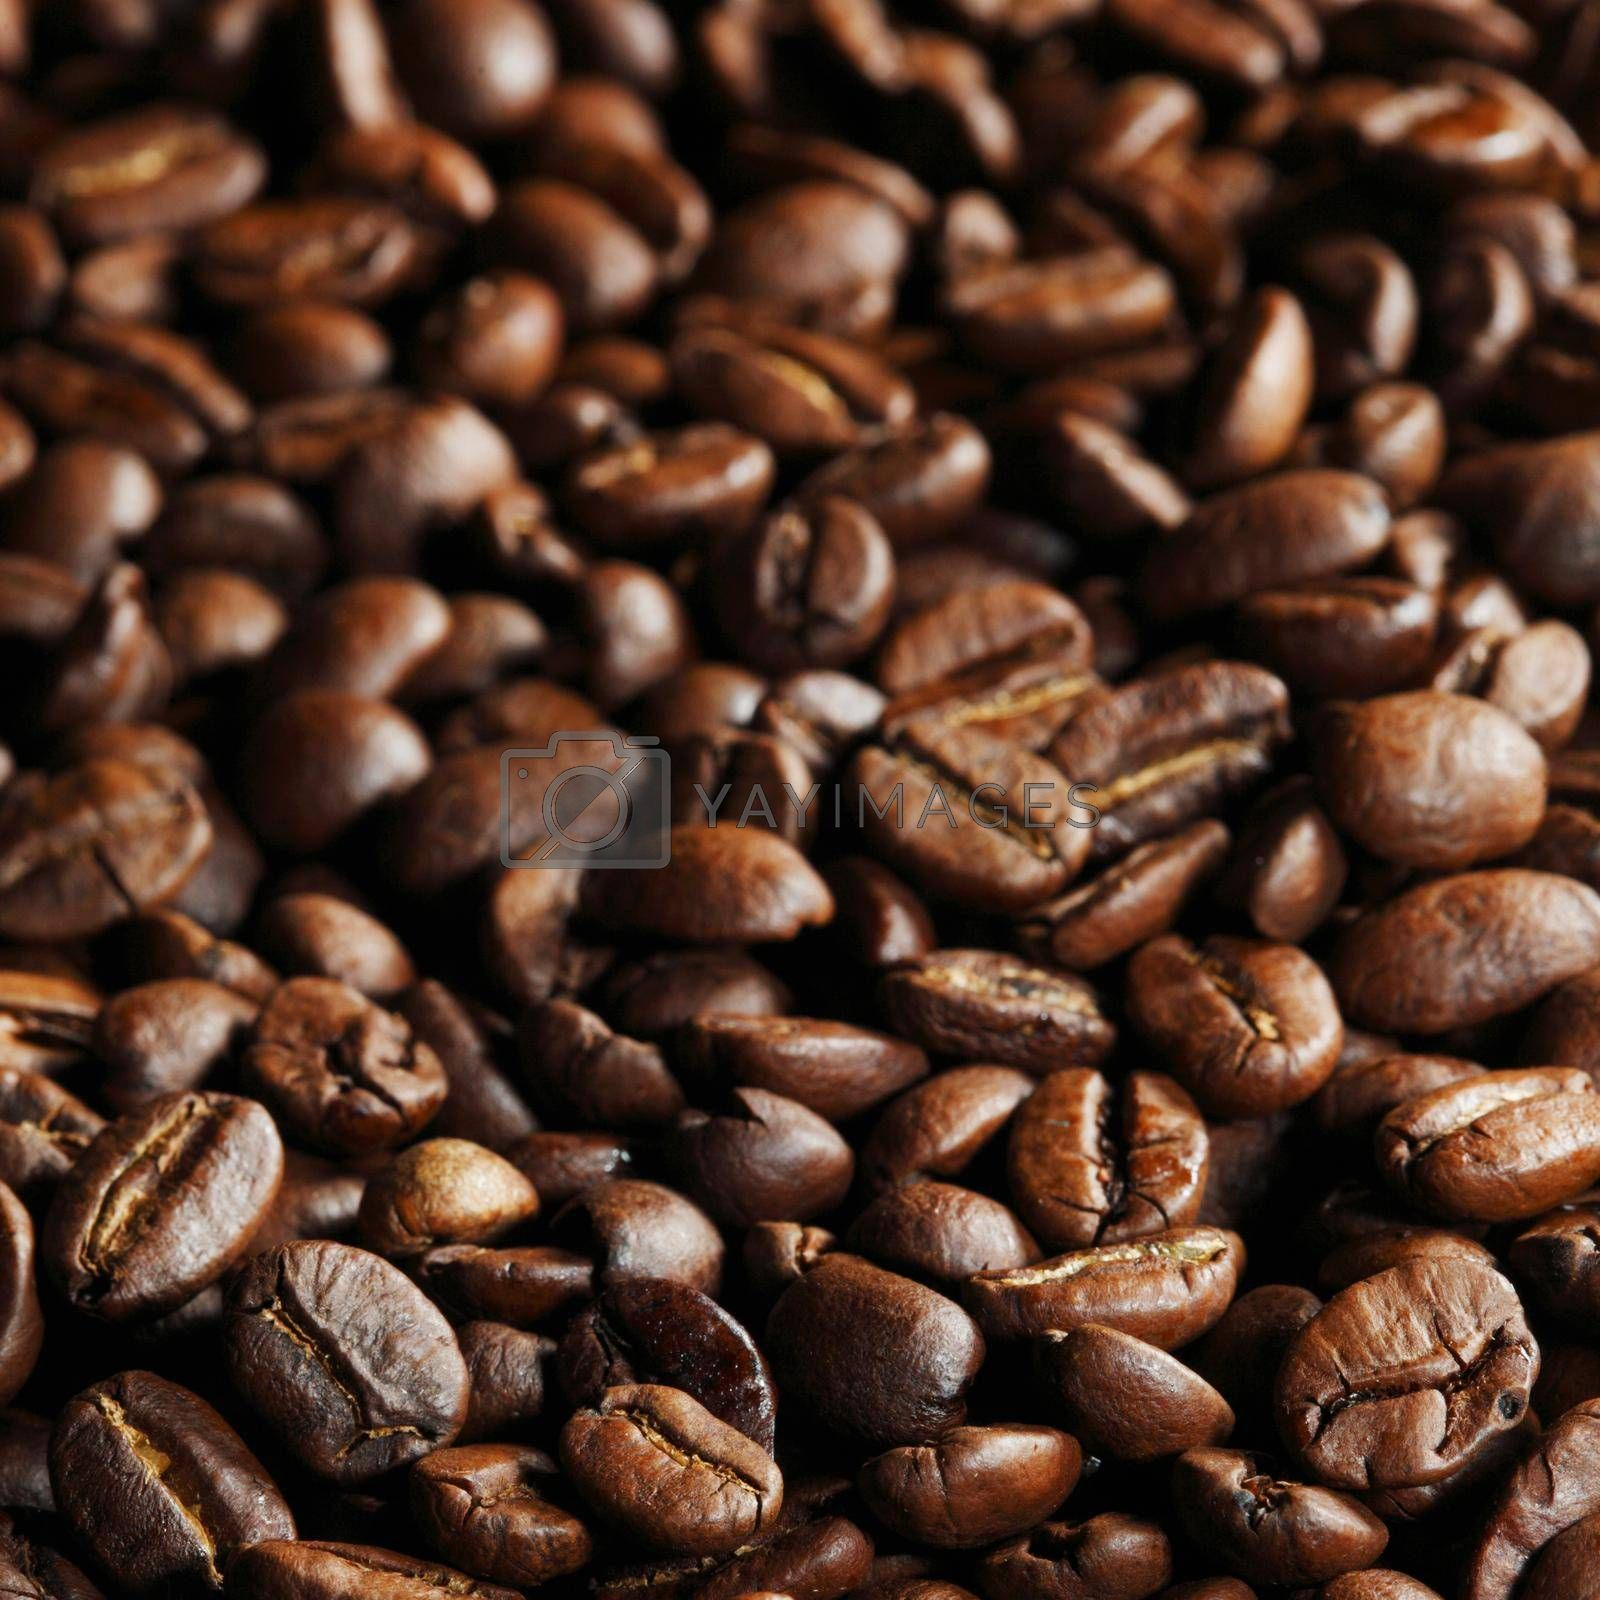 Royalty free image of Coffee beans background by Yellowj